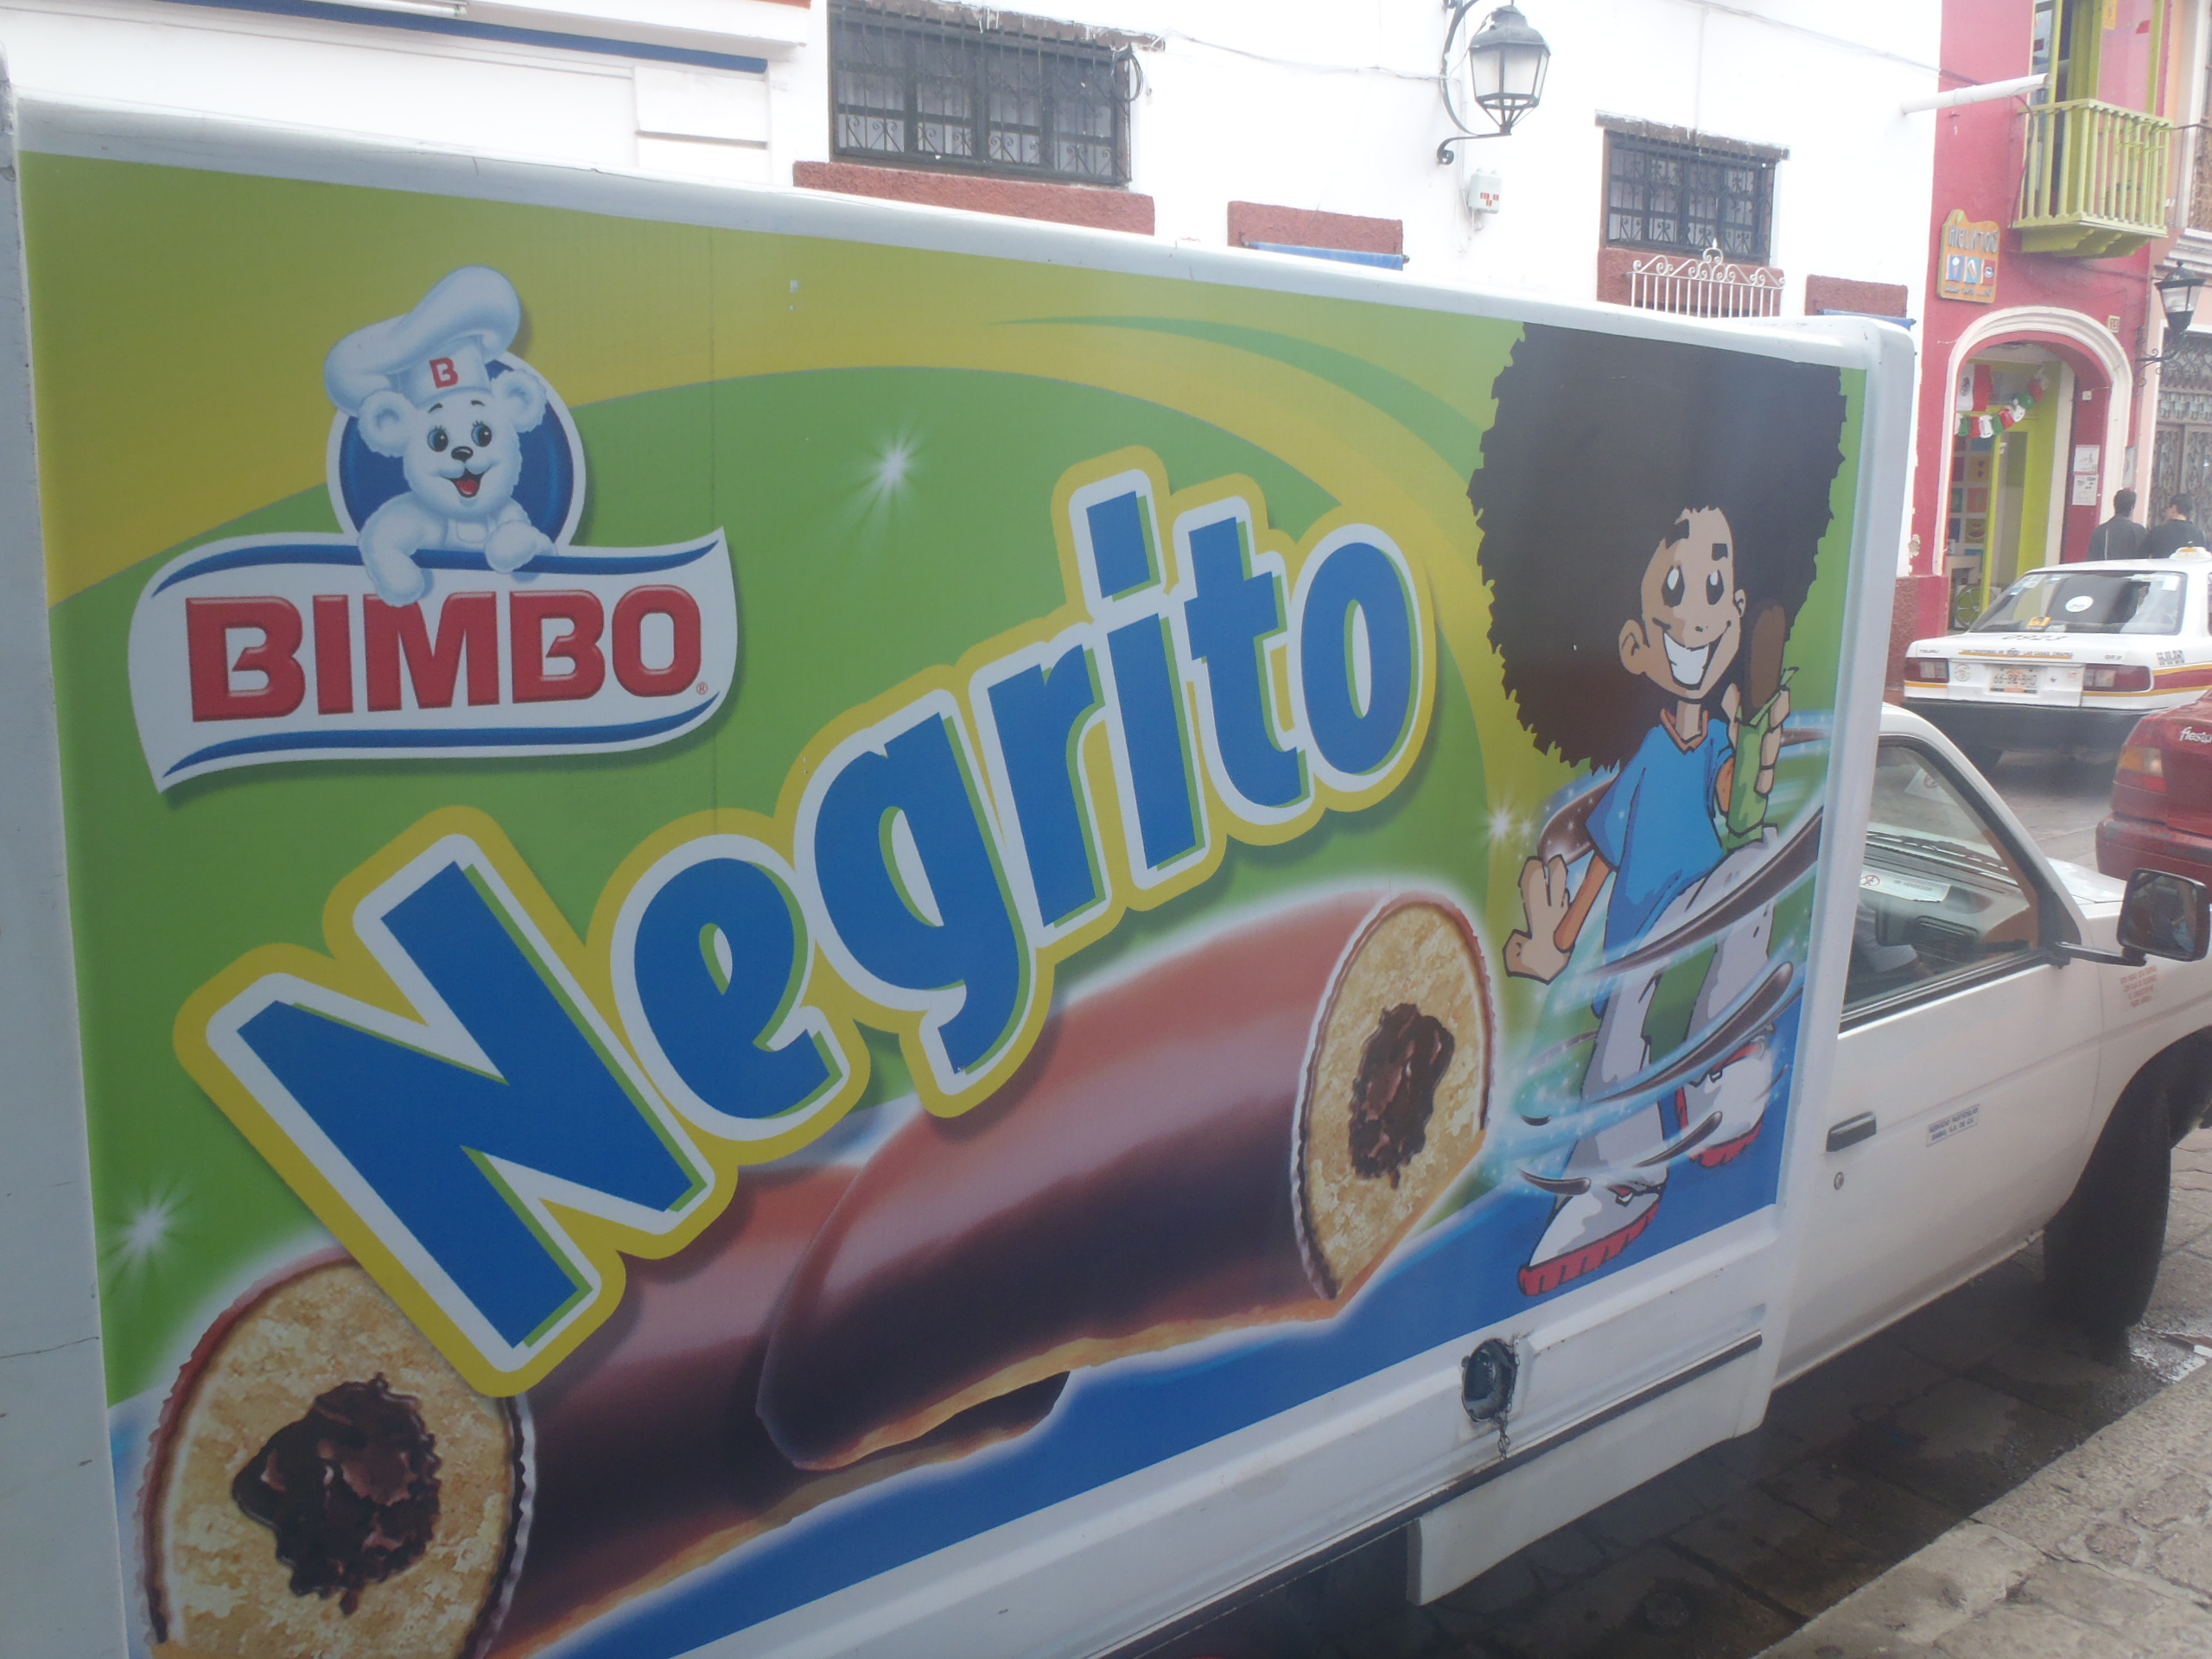 A truck selling Negrito products